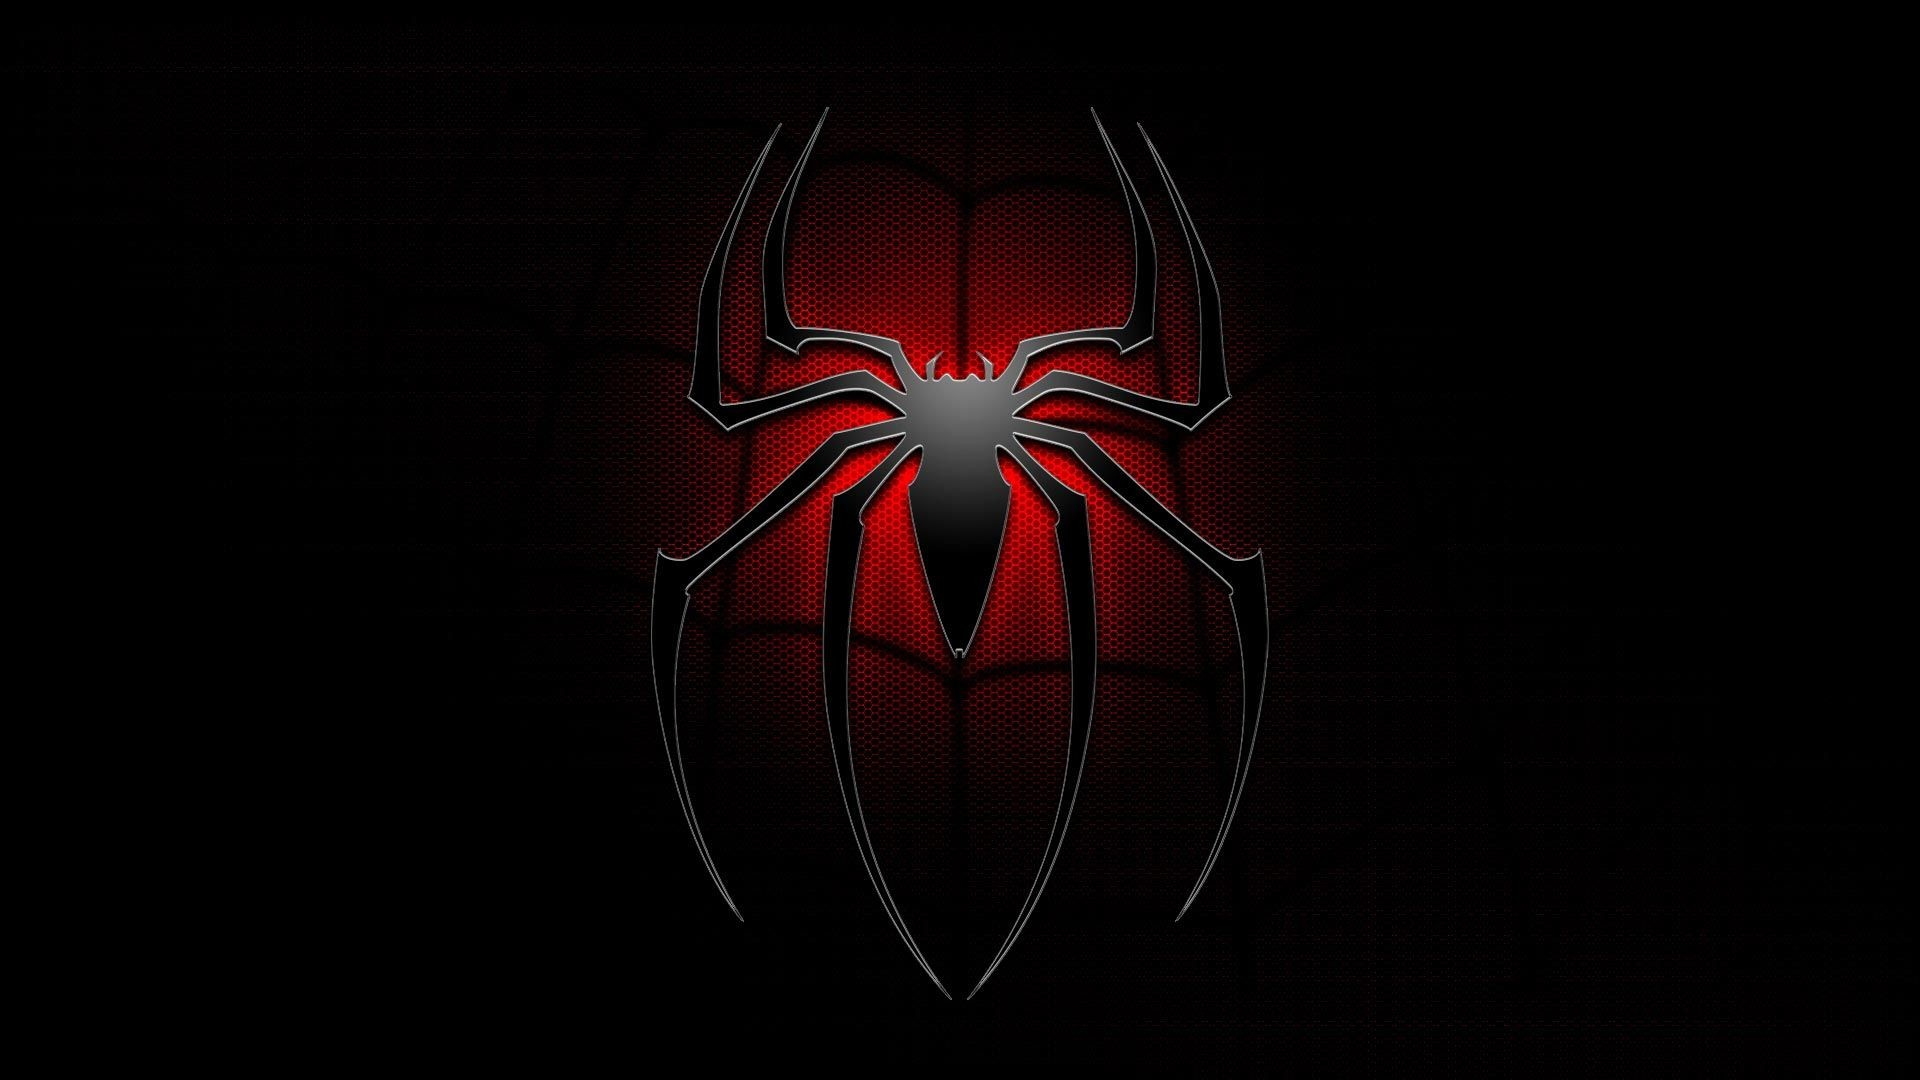 1920x1080 Spiderman Logo Exclusive HD Wallpapers #6517